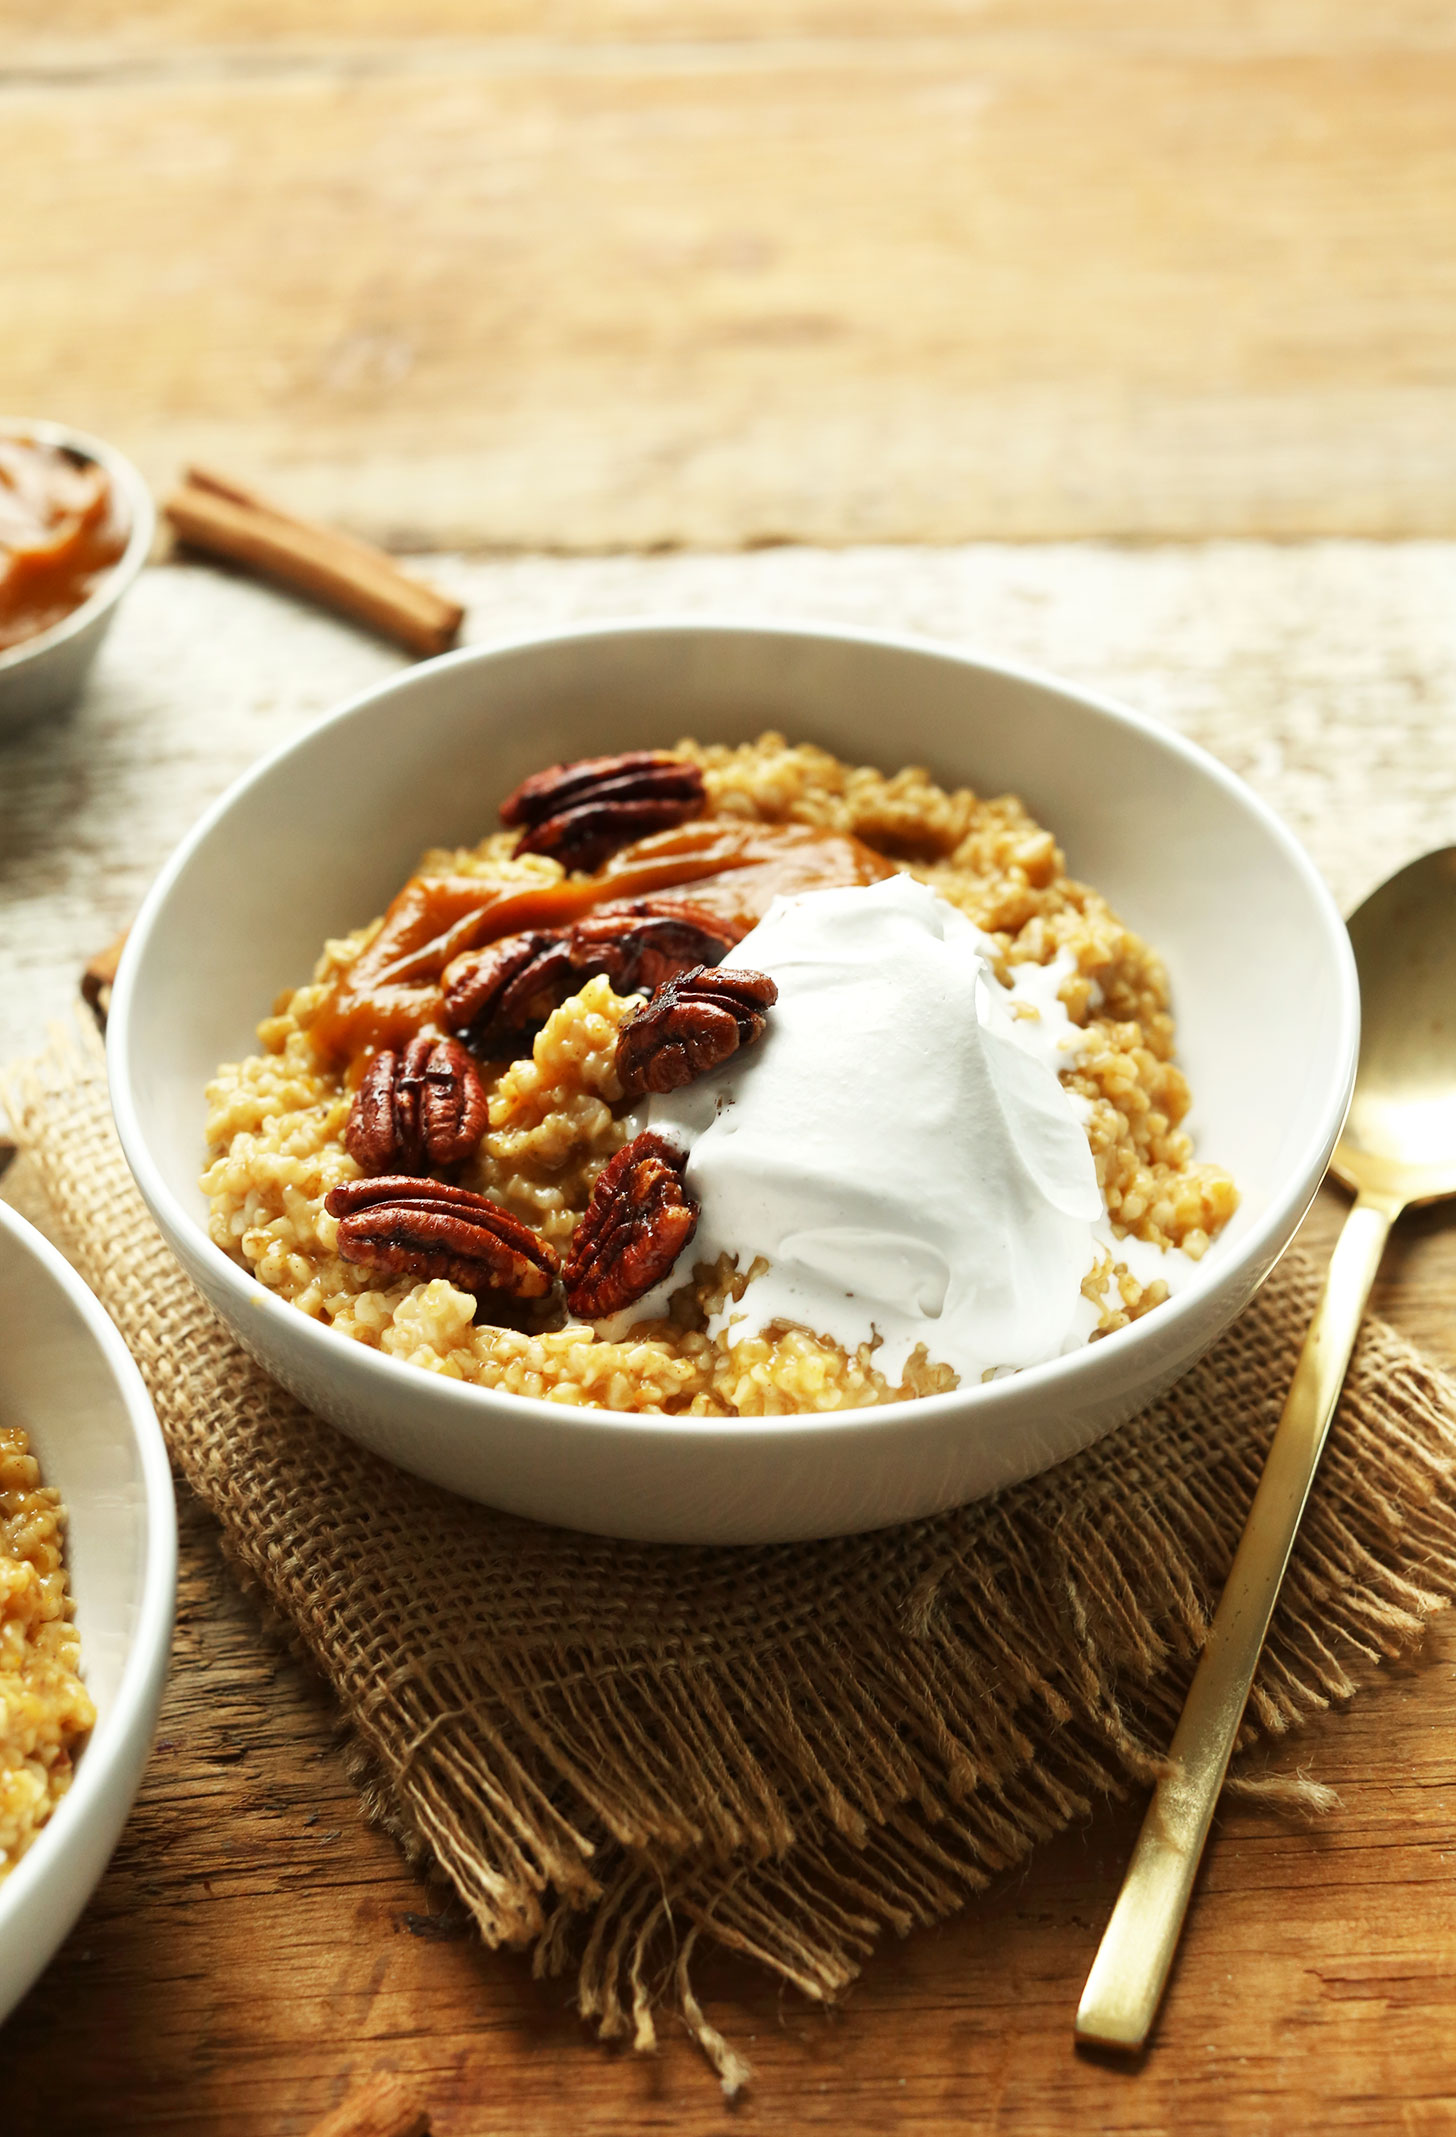 Bowl of our naturally-sweetened gluten-free vegan Pumpkin Pie Oats